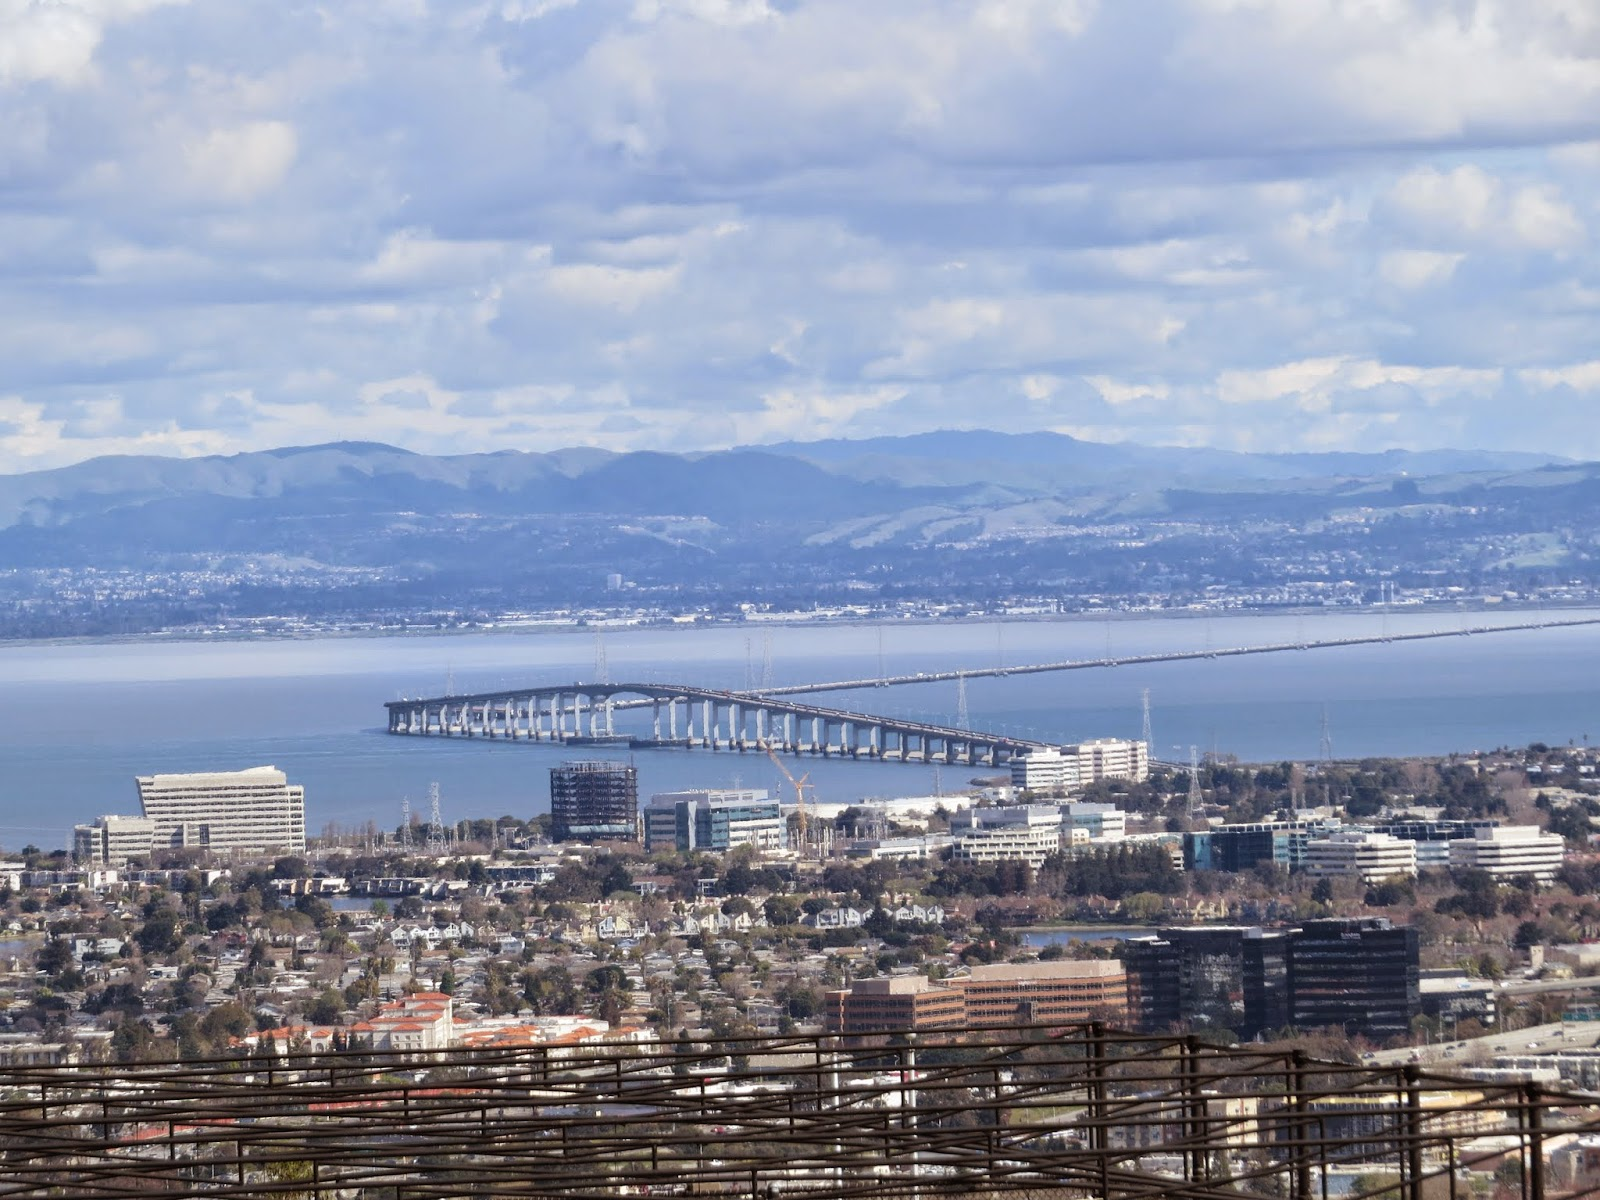 San Mateo Bridge and views of the San Francisco Bay